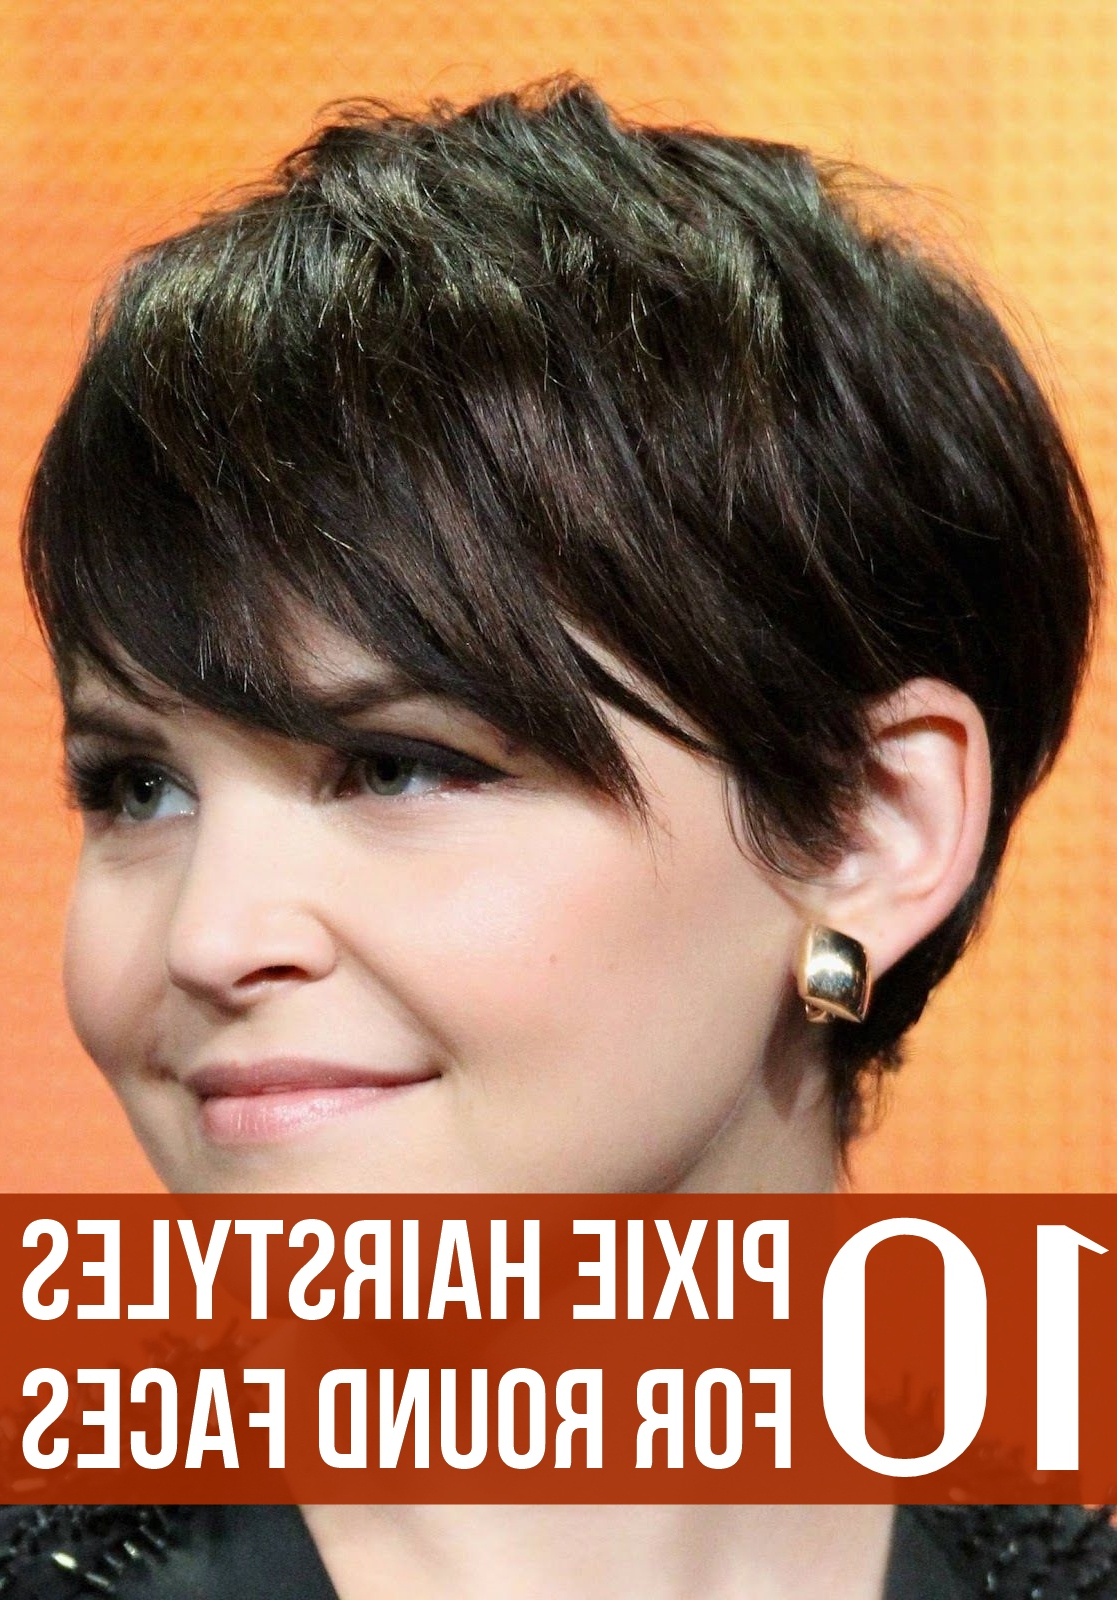 Top 10 Pixie Hairstyles For Round Faces Pertaining To Pixie Hairstyles For Round Faces (View 3 of 20)